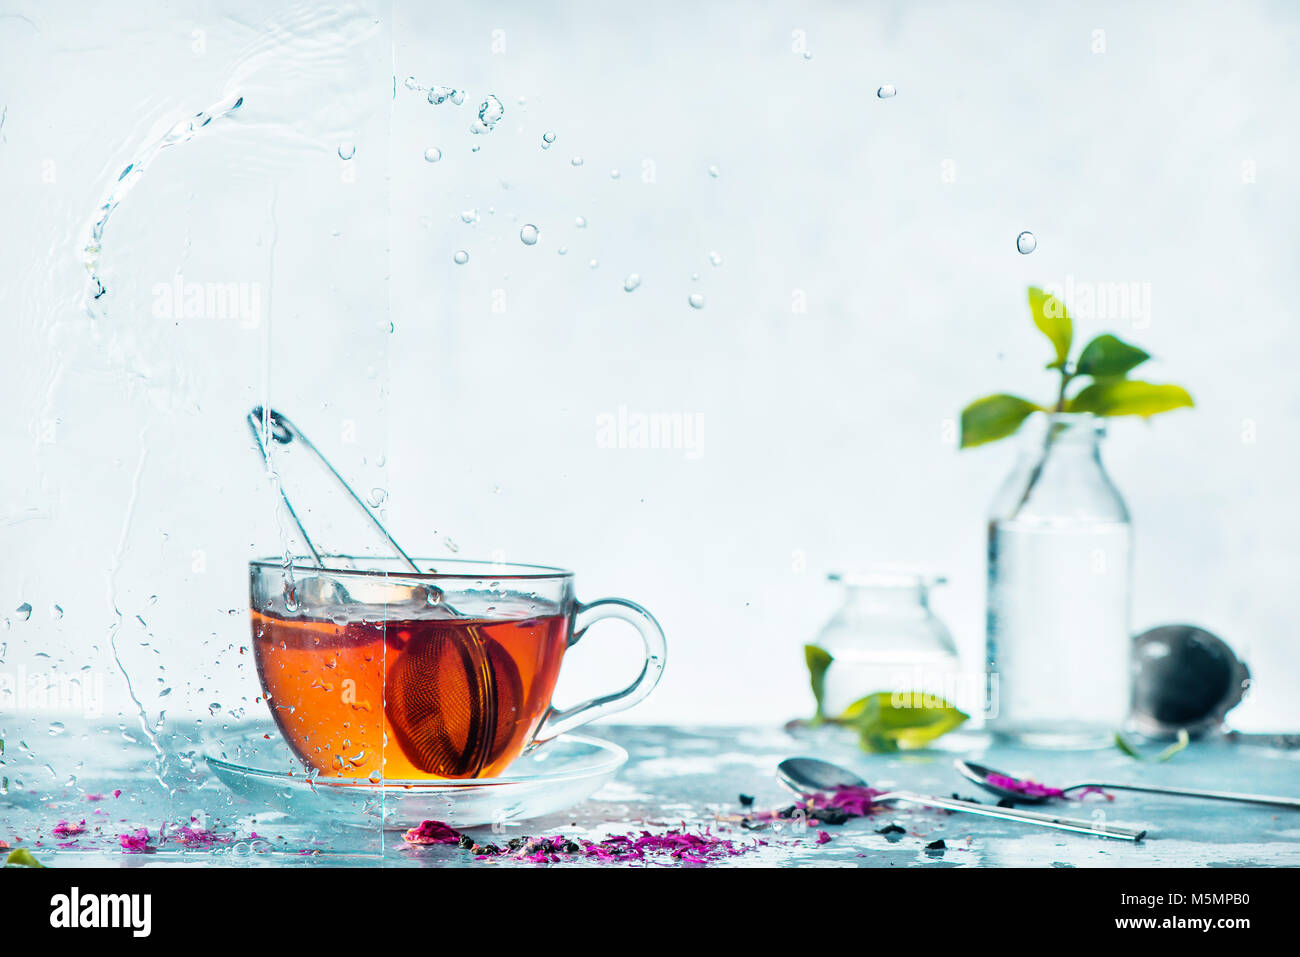 Cup of tea, transparent on a light background with glass bottles and green leaves. Spring still life with raindrops - Stock Image